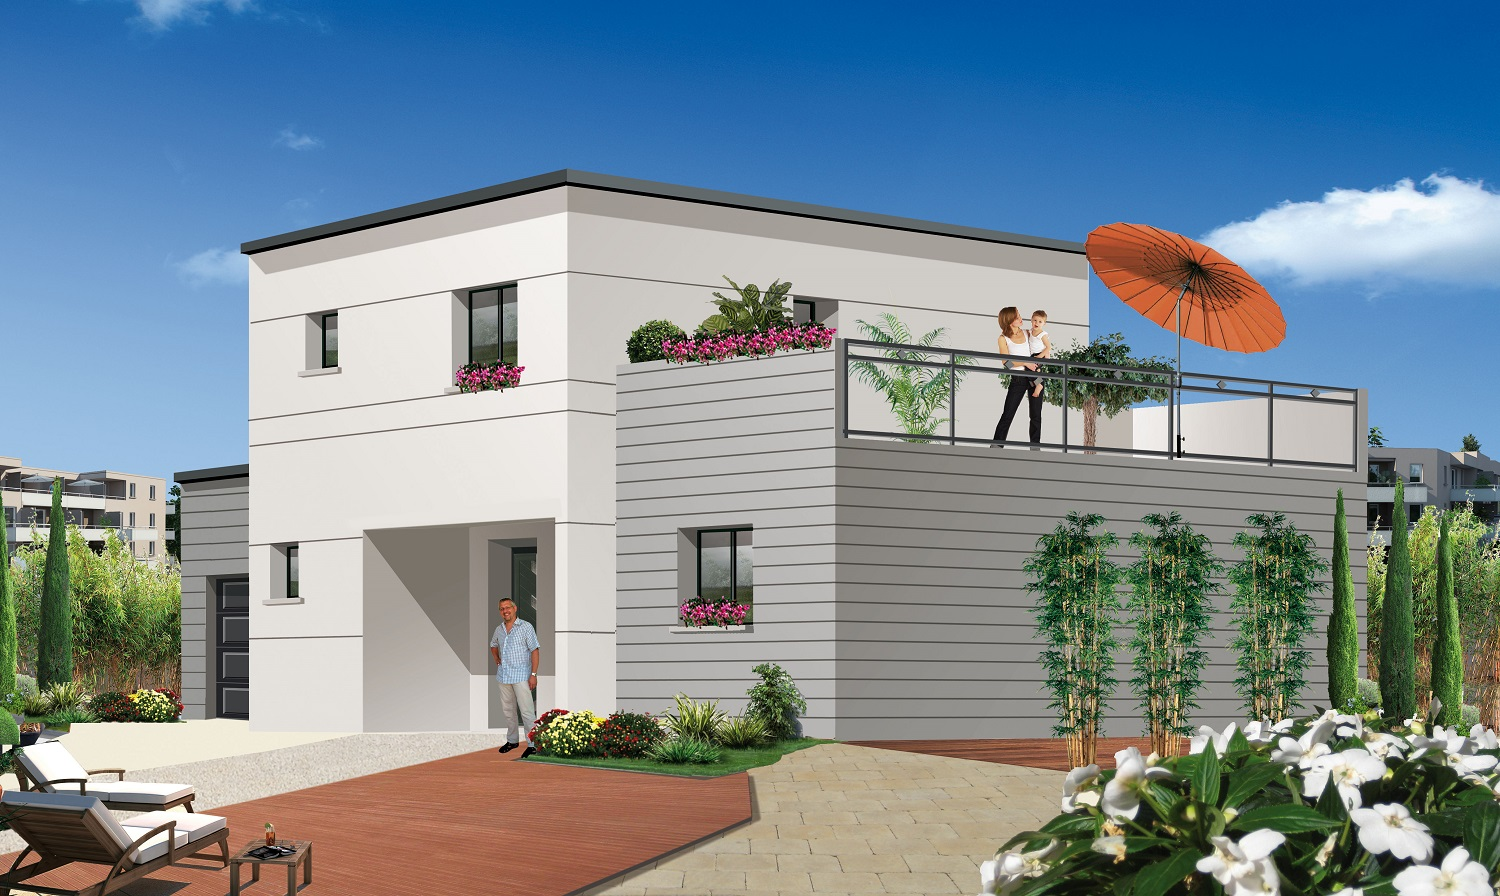 Mtlf constructeur compiegne oise for Construction maison contemporaine oise